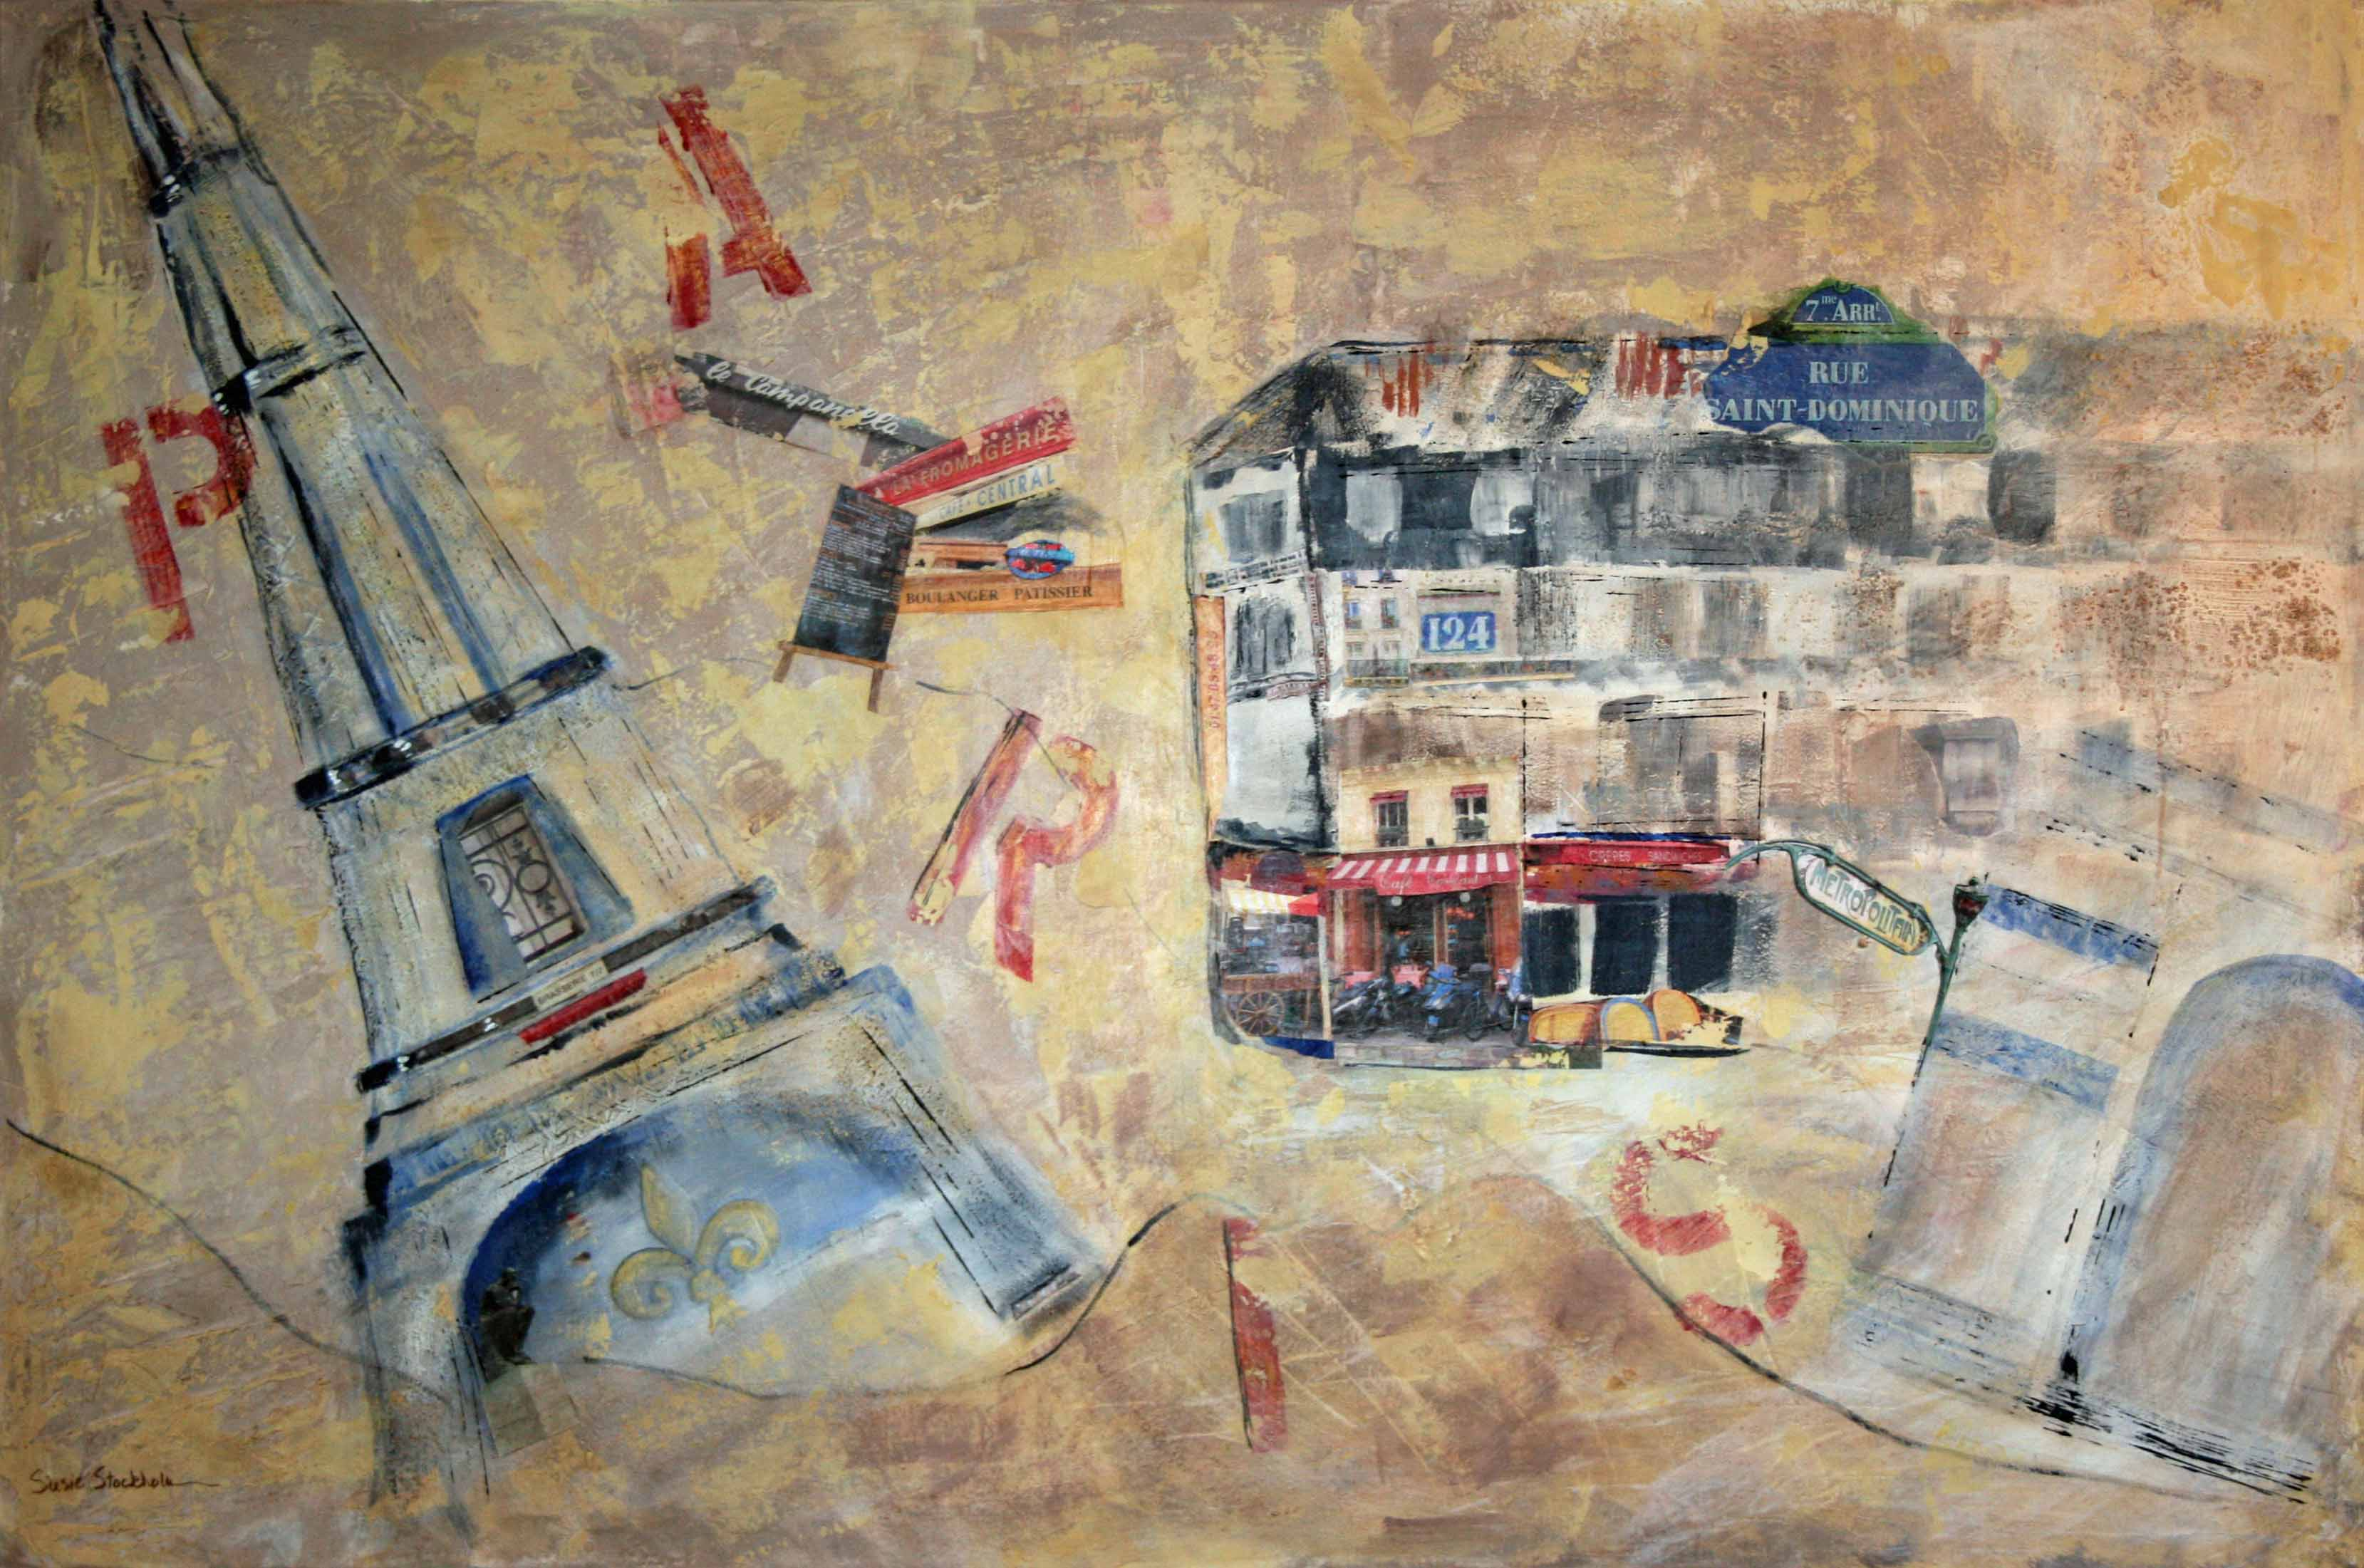 """PARIS"" by Susie Stockholm, collage and acrylic on canvas, 40"" x 60"""